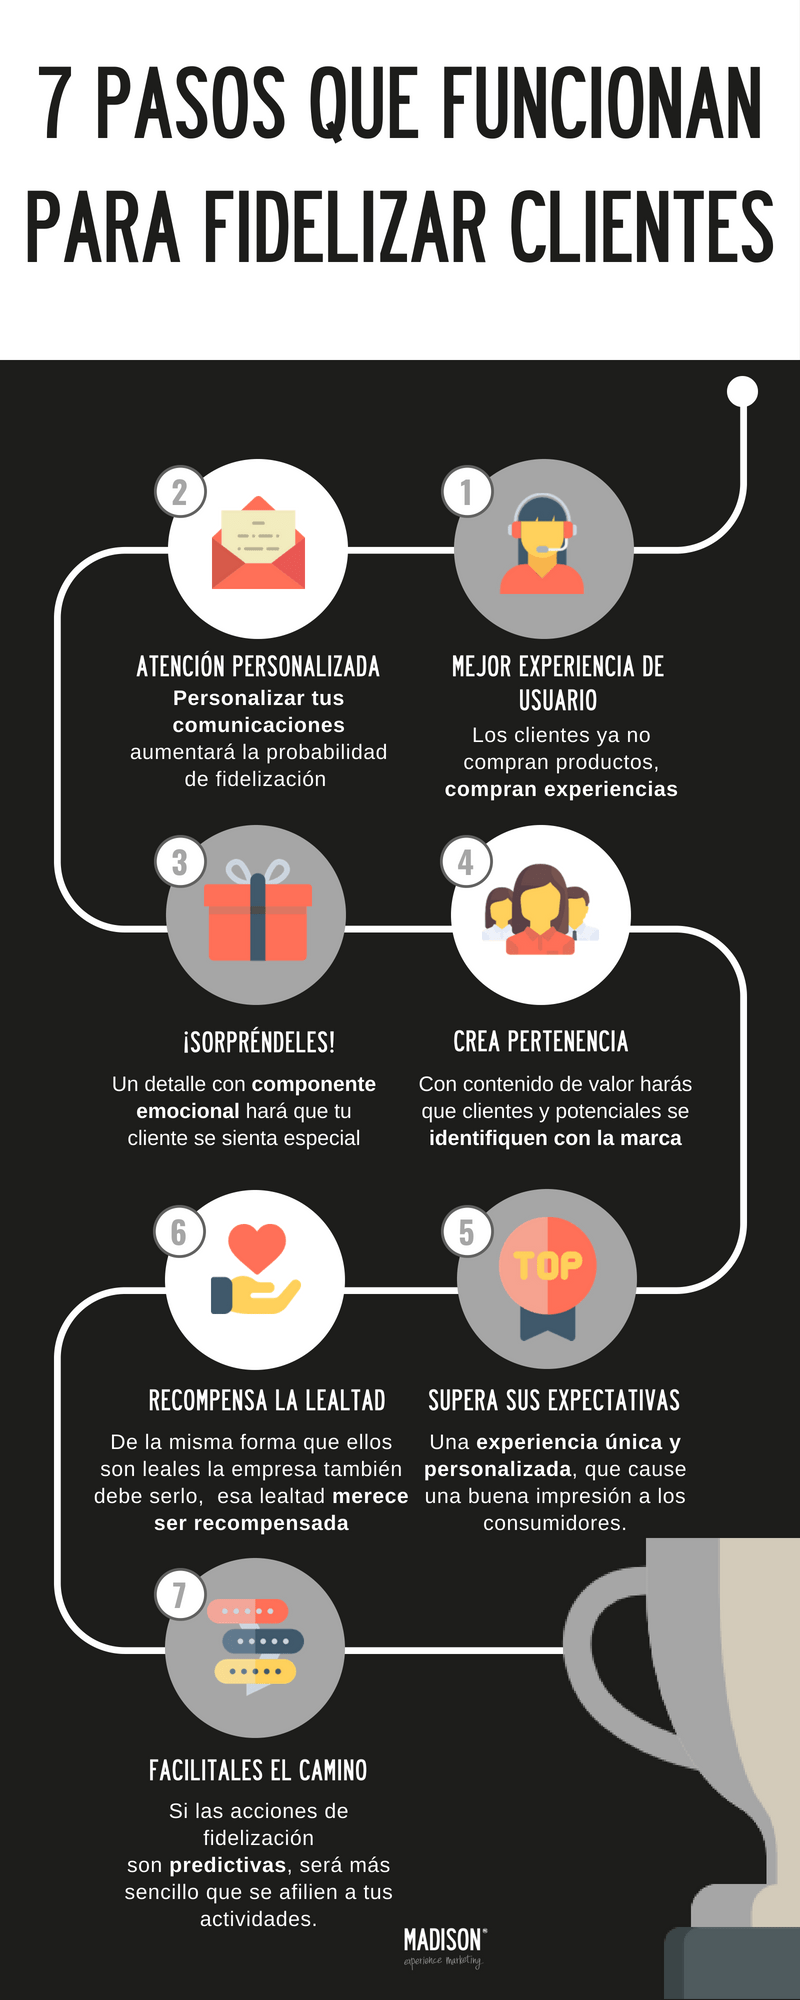 7 pasos para fidelizar a un cliente #infografia #infographic #marketing